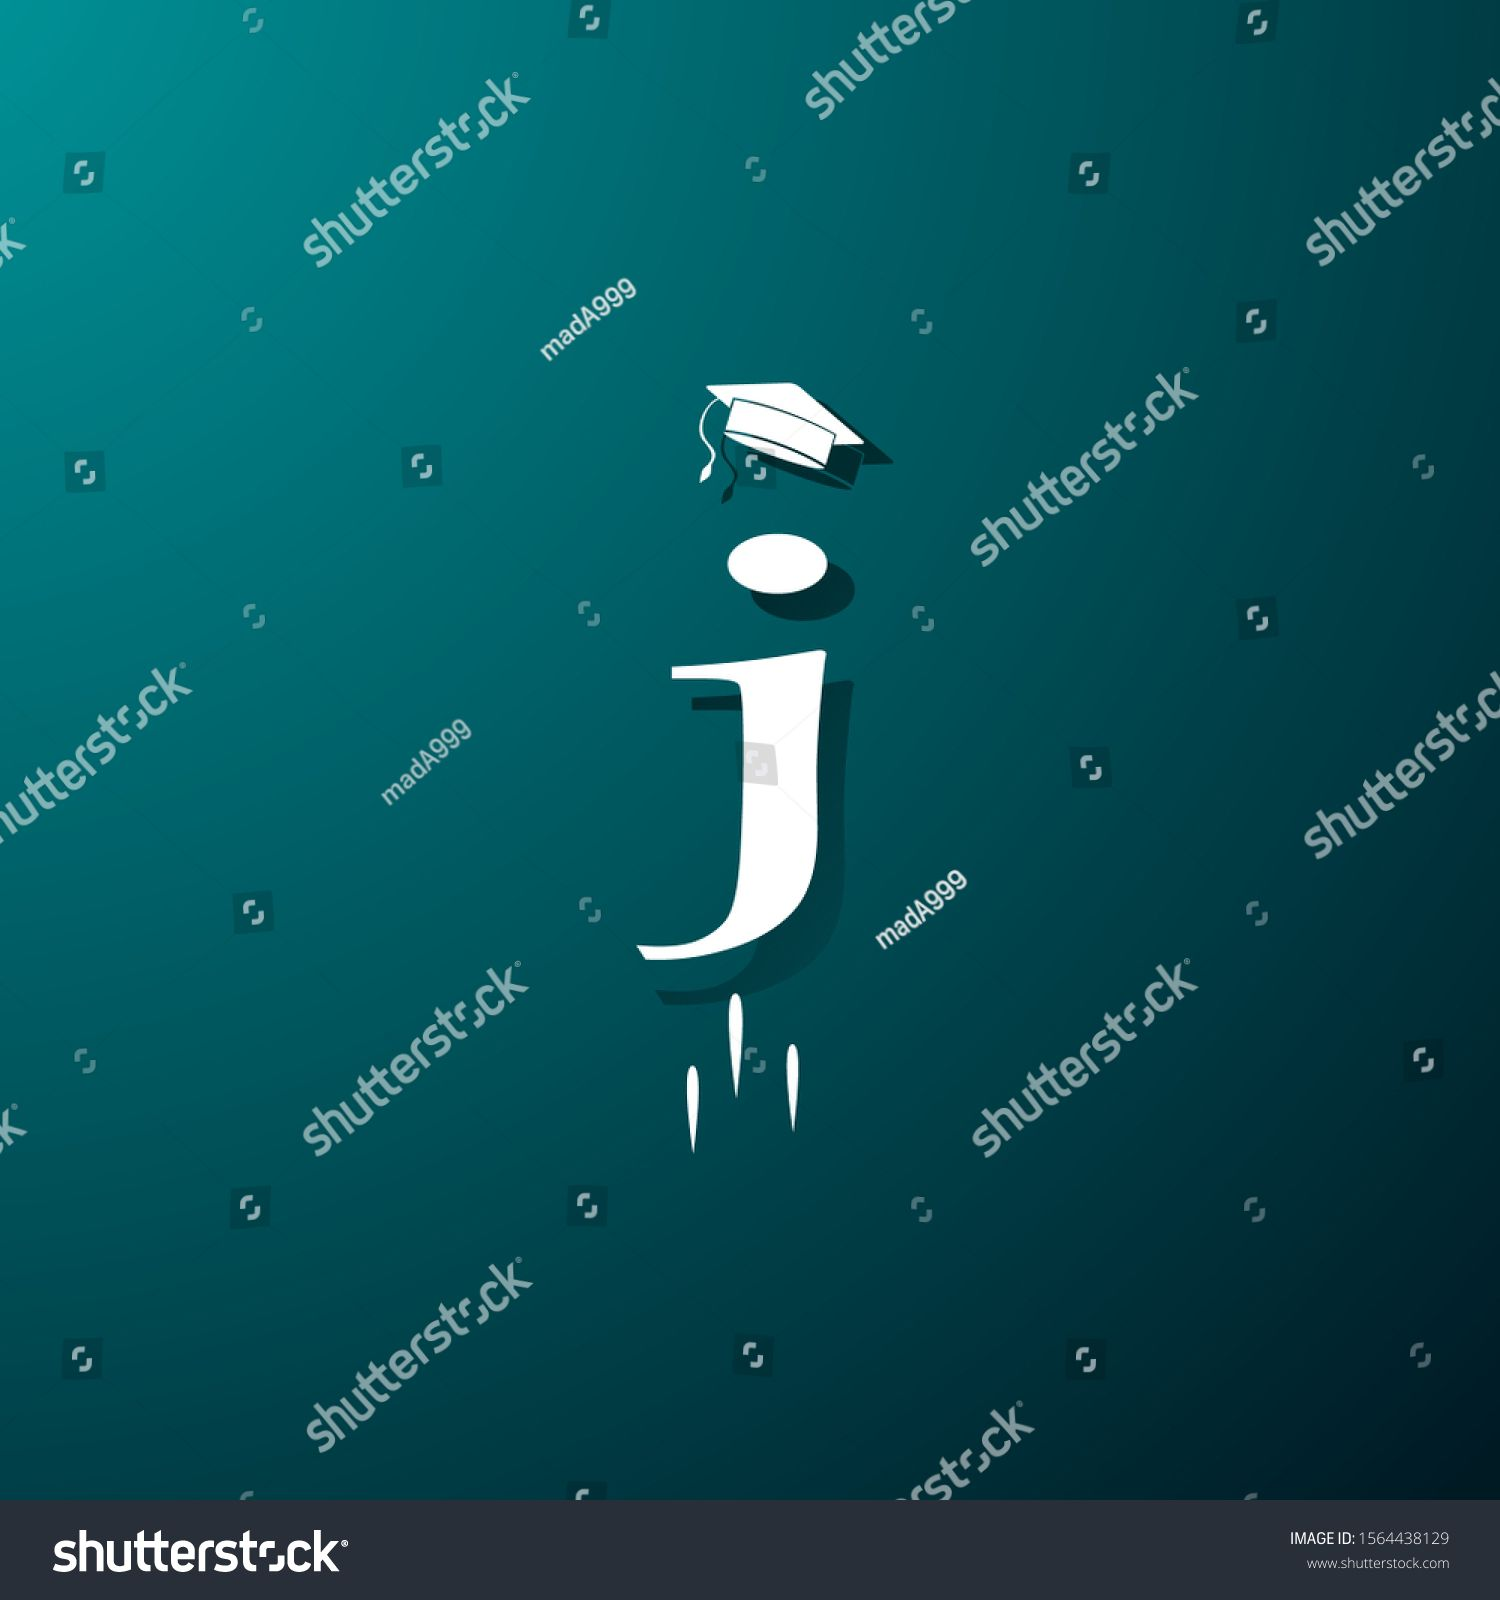 Photo of J Jump Graduation Dream All Students Stock Vector (Royalty Free) 1564438129